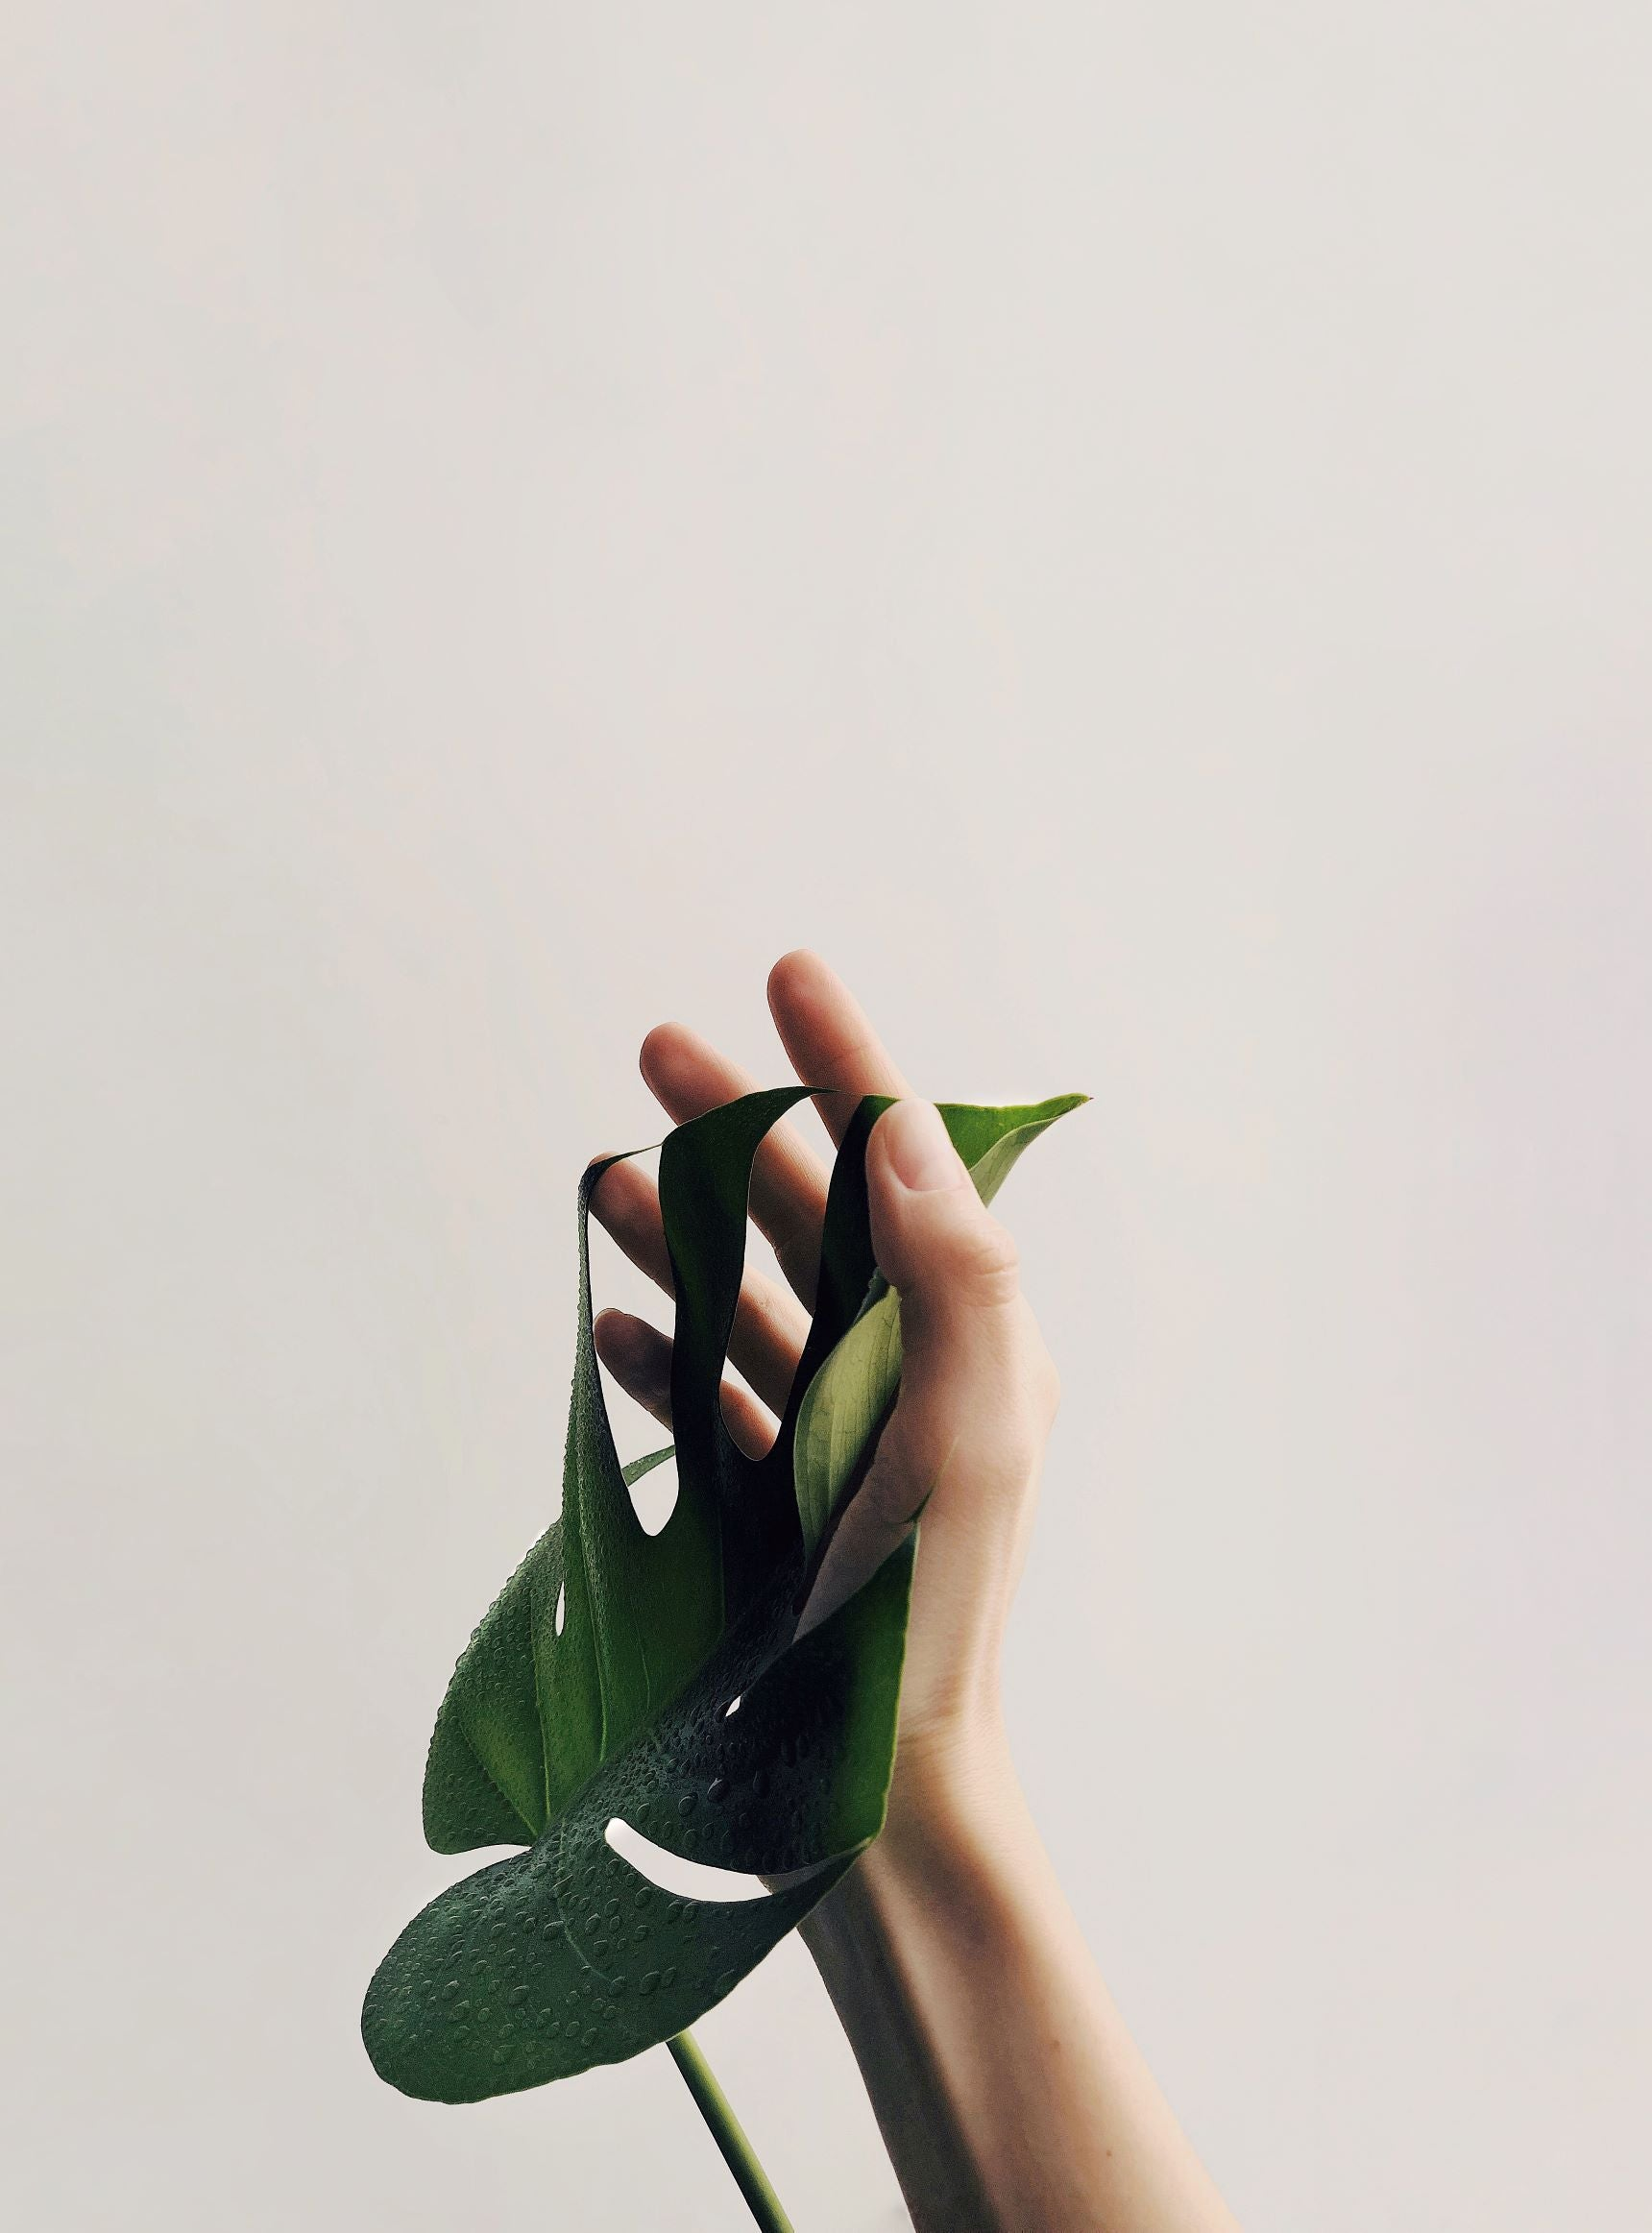 monstera swiss cheese plant leaf being held by persons hand